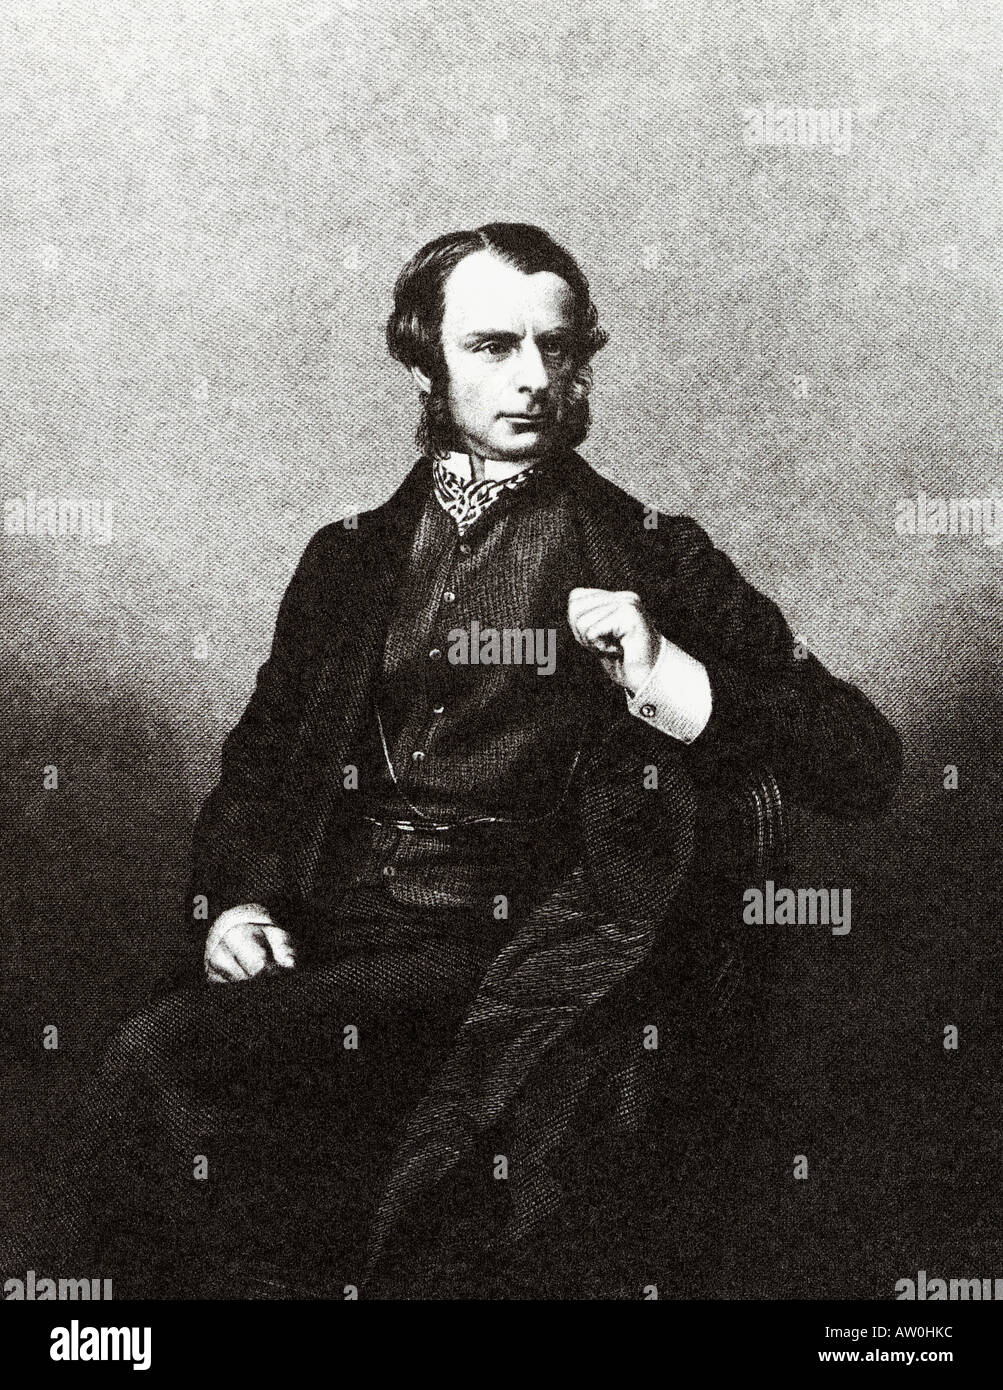 CHARLES KINGSLEY English writer 1819 to 1875 - Stock Image